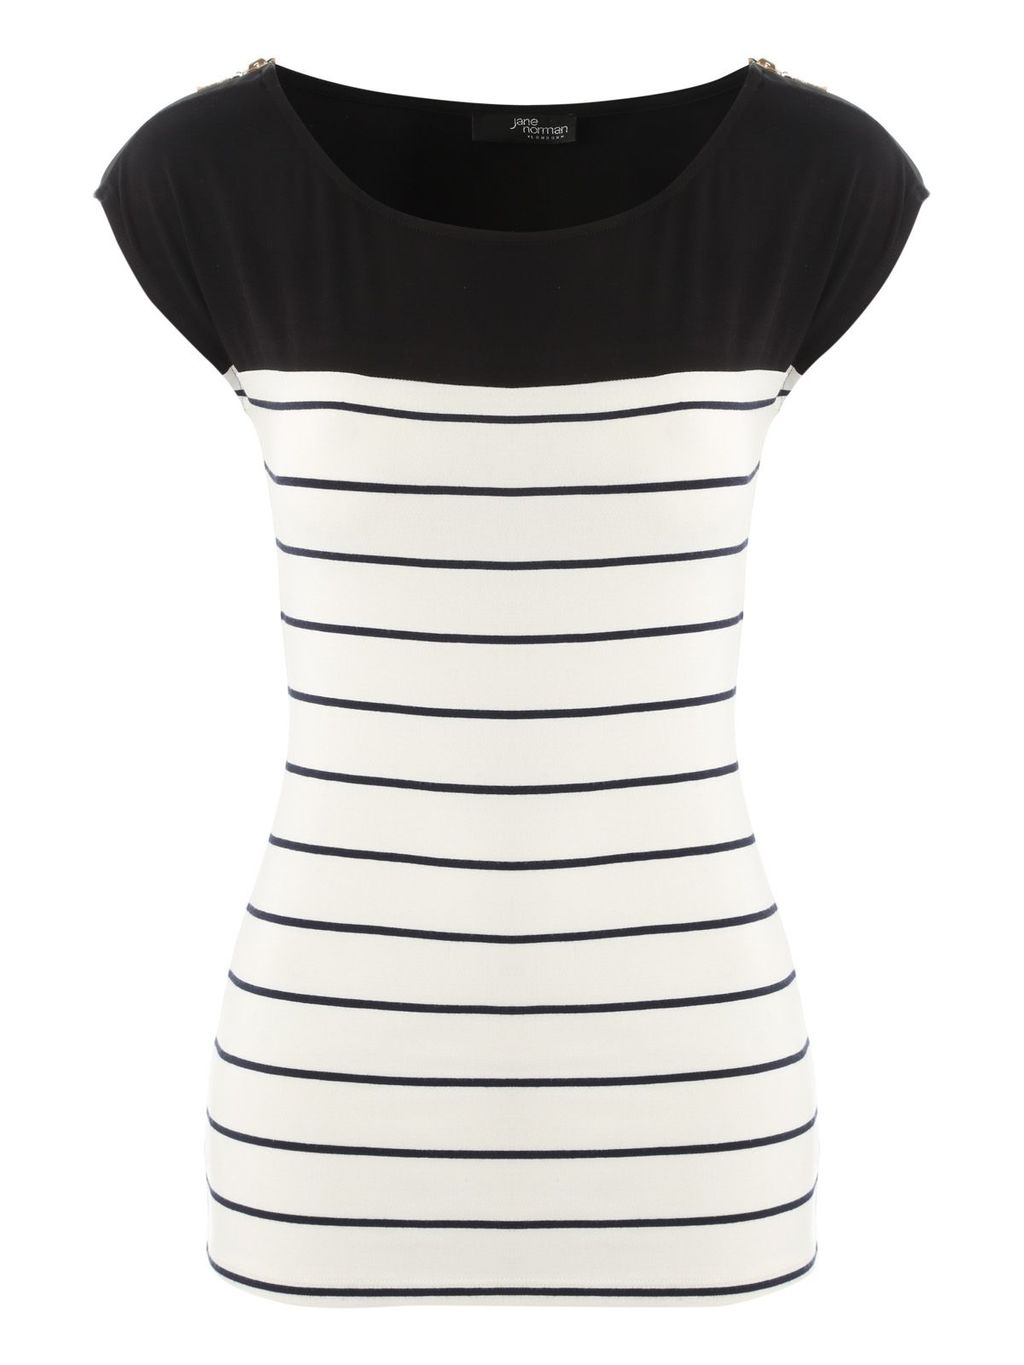 Zip Stripe Top, Multi Coloured - neckline: round neck; sleeve style: capped; pattern: horizontal stripes; secondary colour: white; predominant colour: black; occasions: casual, creative work; length: standard; style: top; fibres: viscose/rayon - stretch; fit: body skimming; sleeve length: short sleeve; trends: monochrome; pattern type: fabric; texture group: jersey - stretchy/drapey; pattern size: big & busy (top); season: a/w 2015; wardrobe: basic